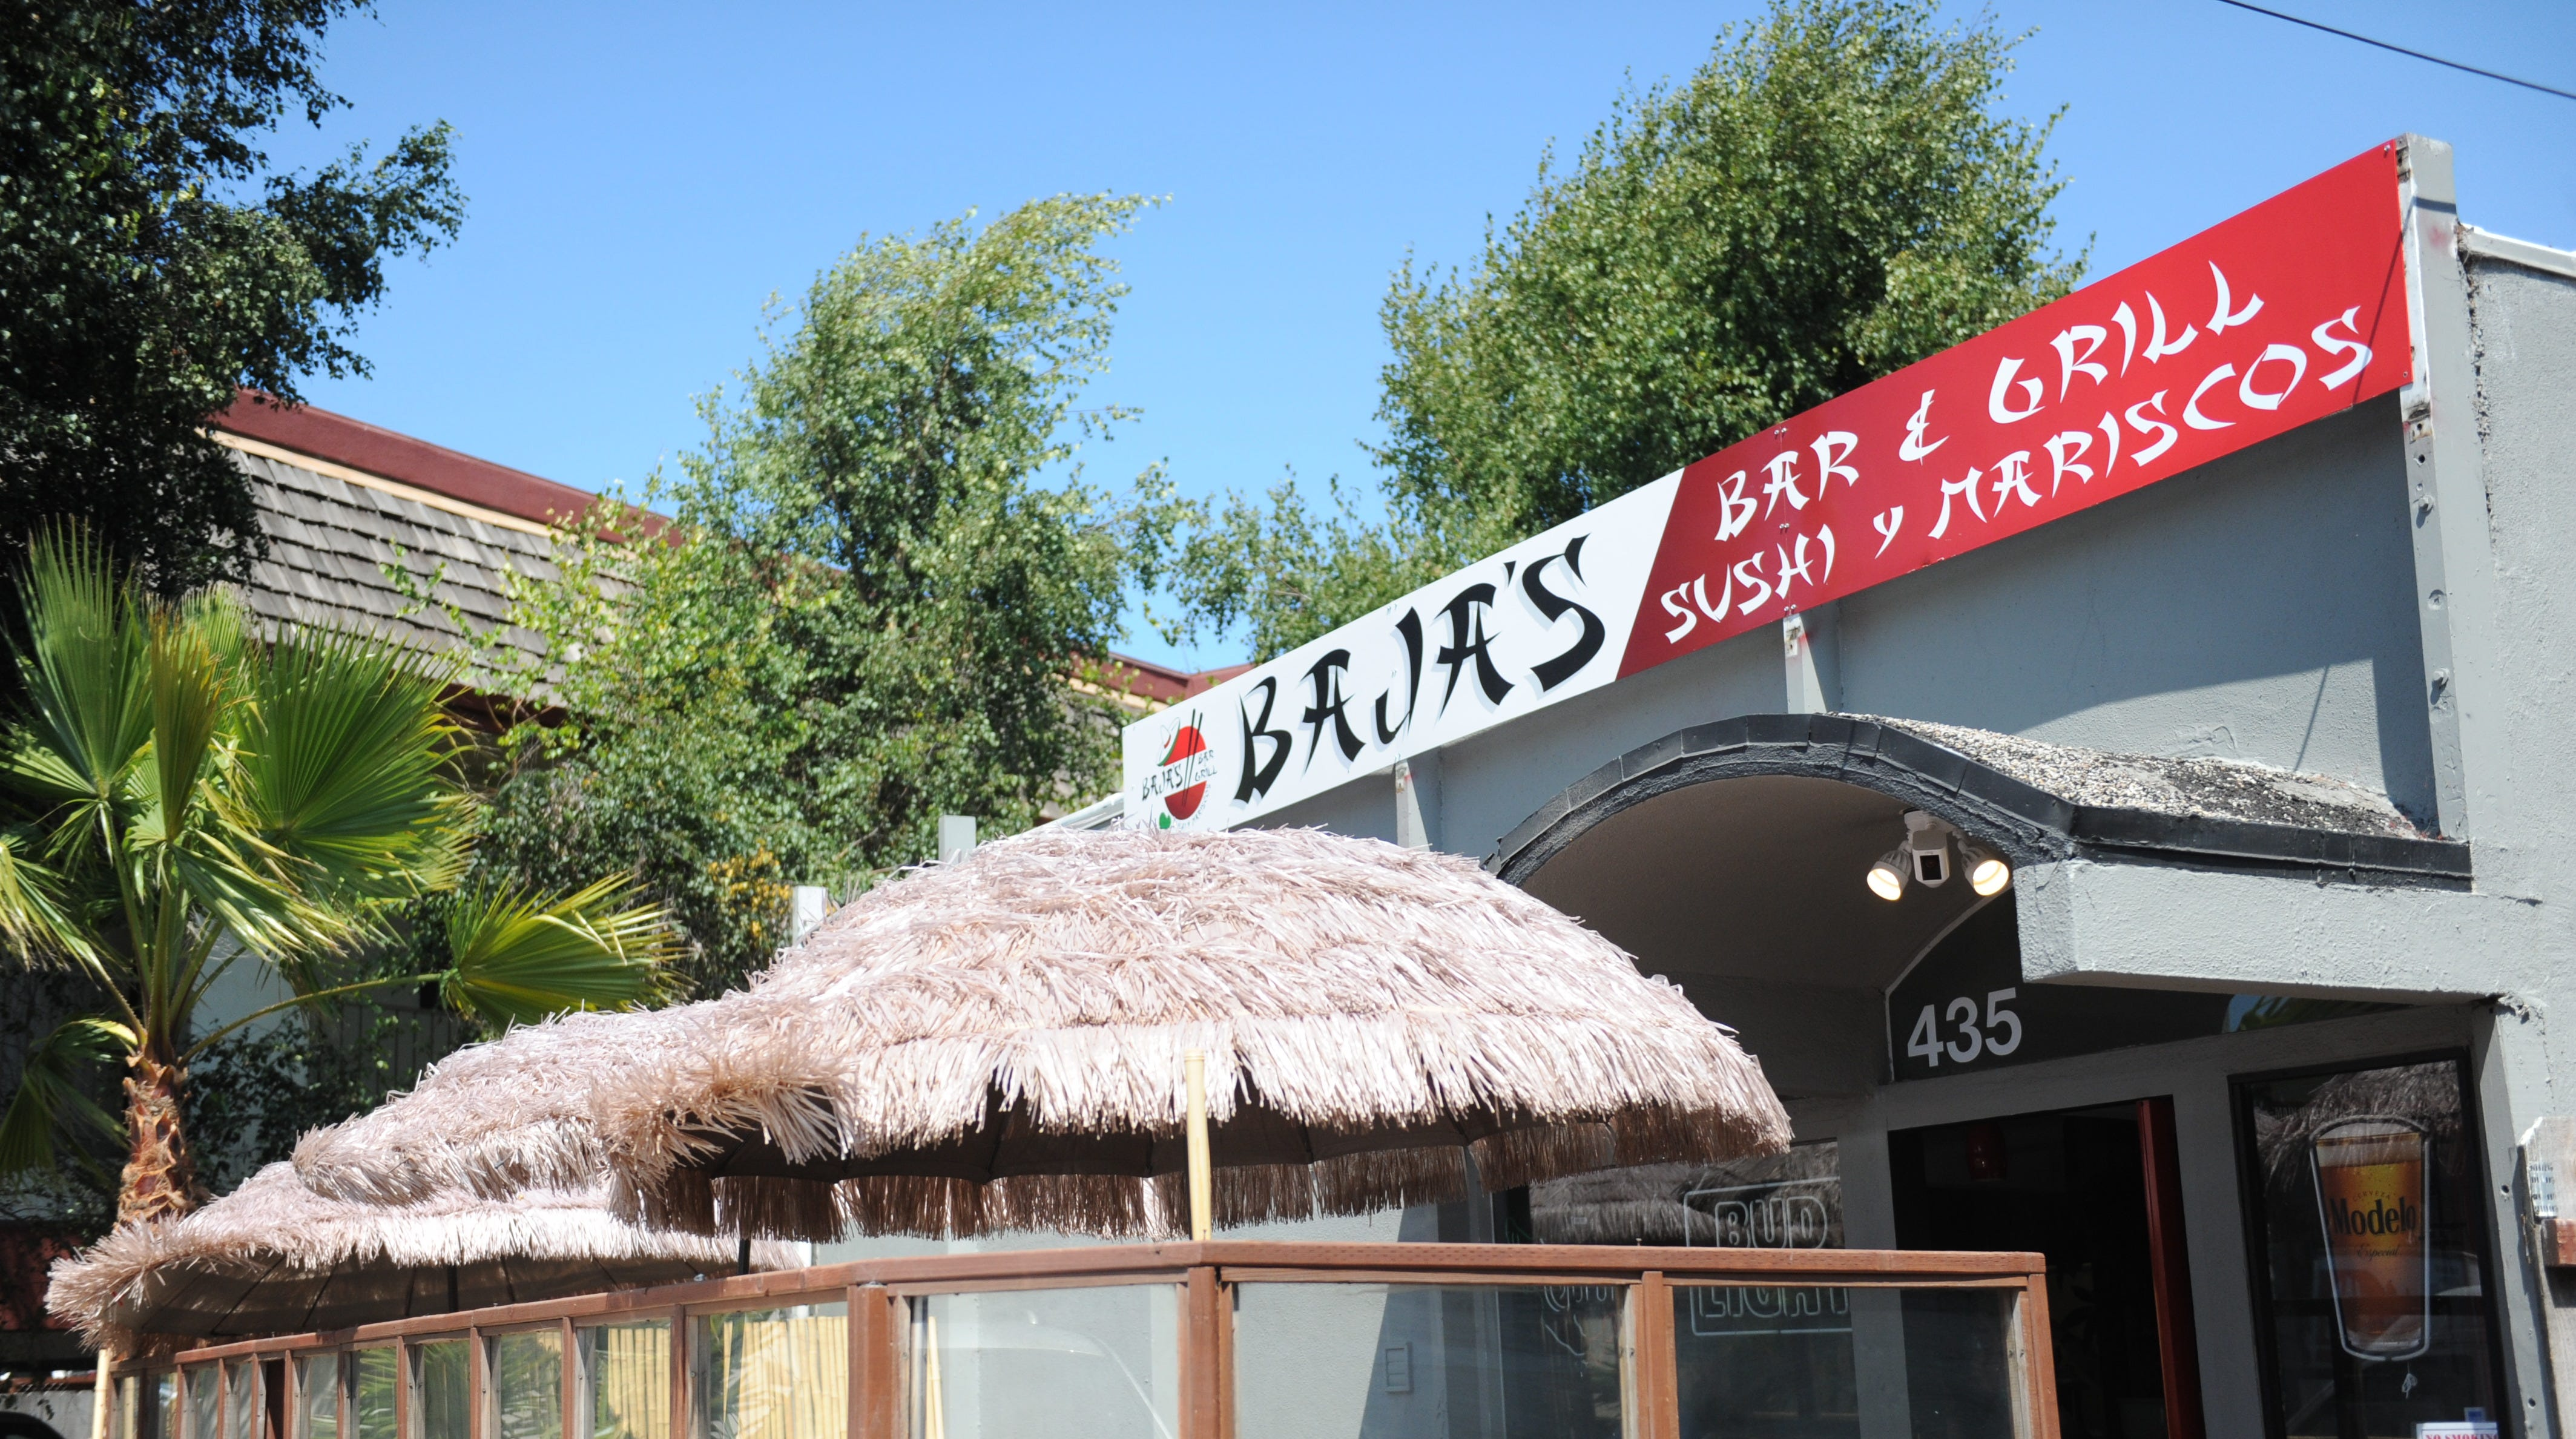 Baja's Bar & Grill in South Salinas opened on Thursday.